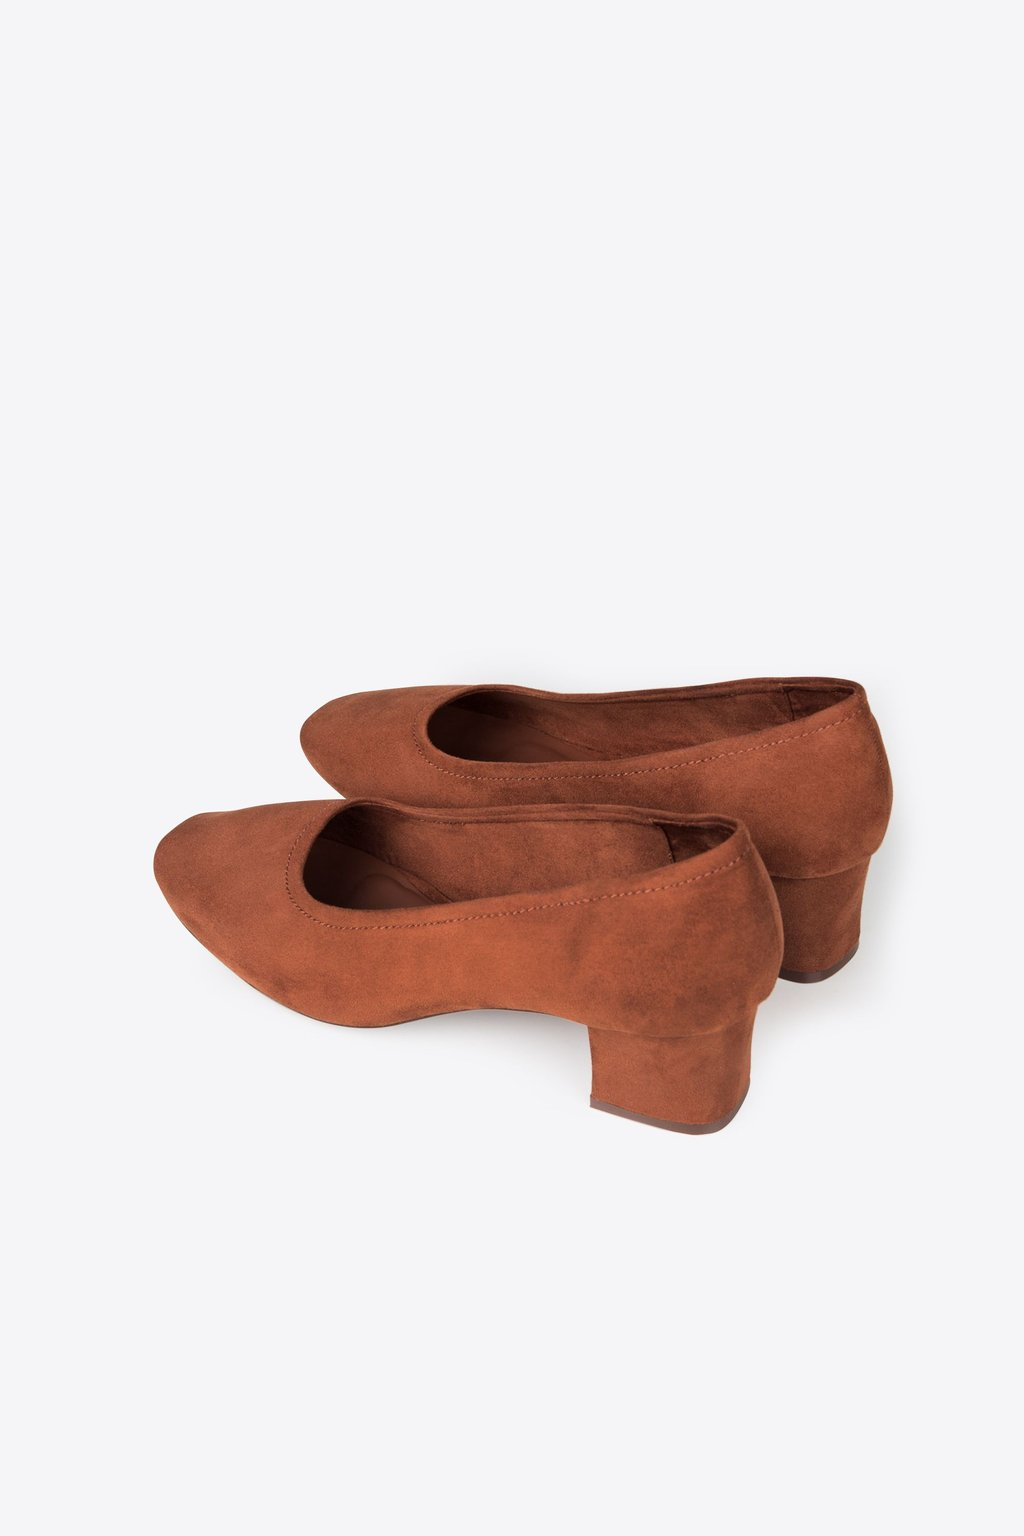 Block Heel 1896 Brown 3